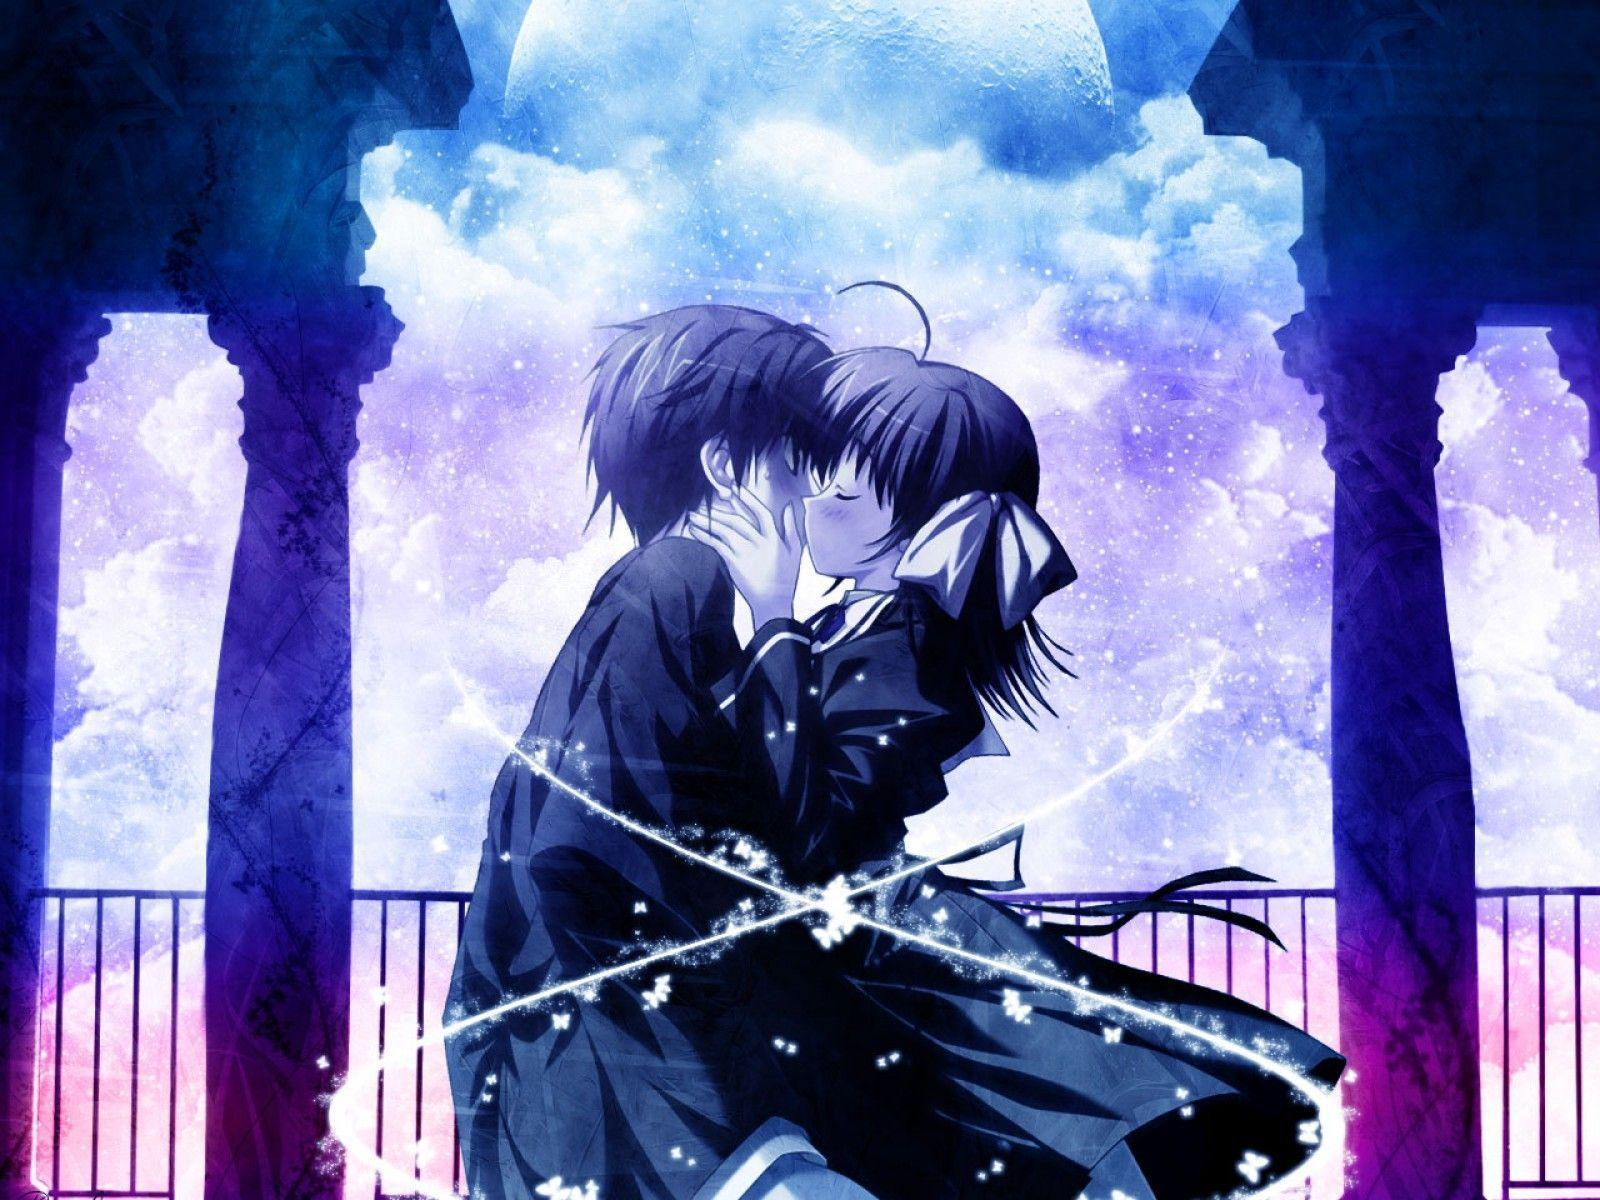 Anime love wallpapers wallpaper cave - Wallpaper manga anime ...